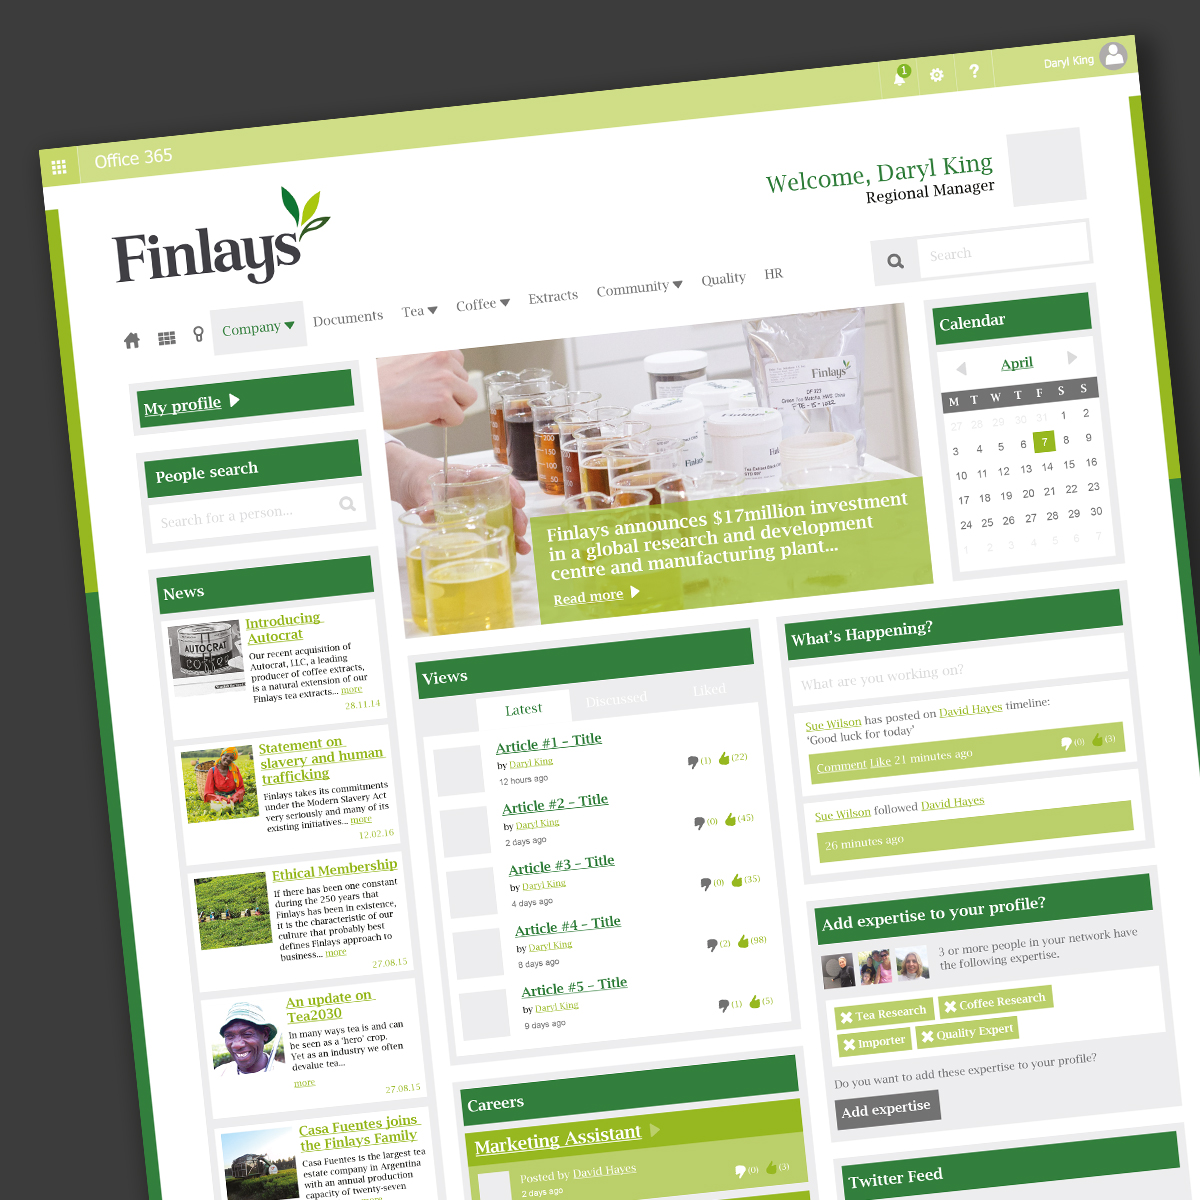 Finlays Intranet site